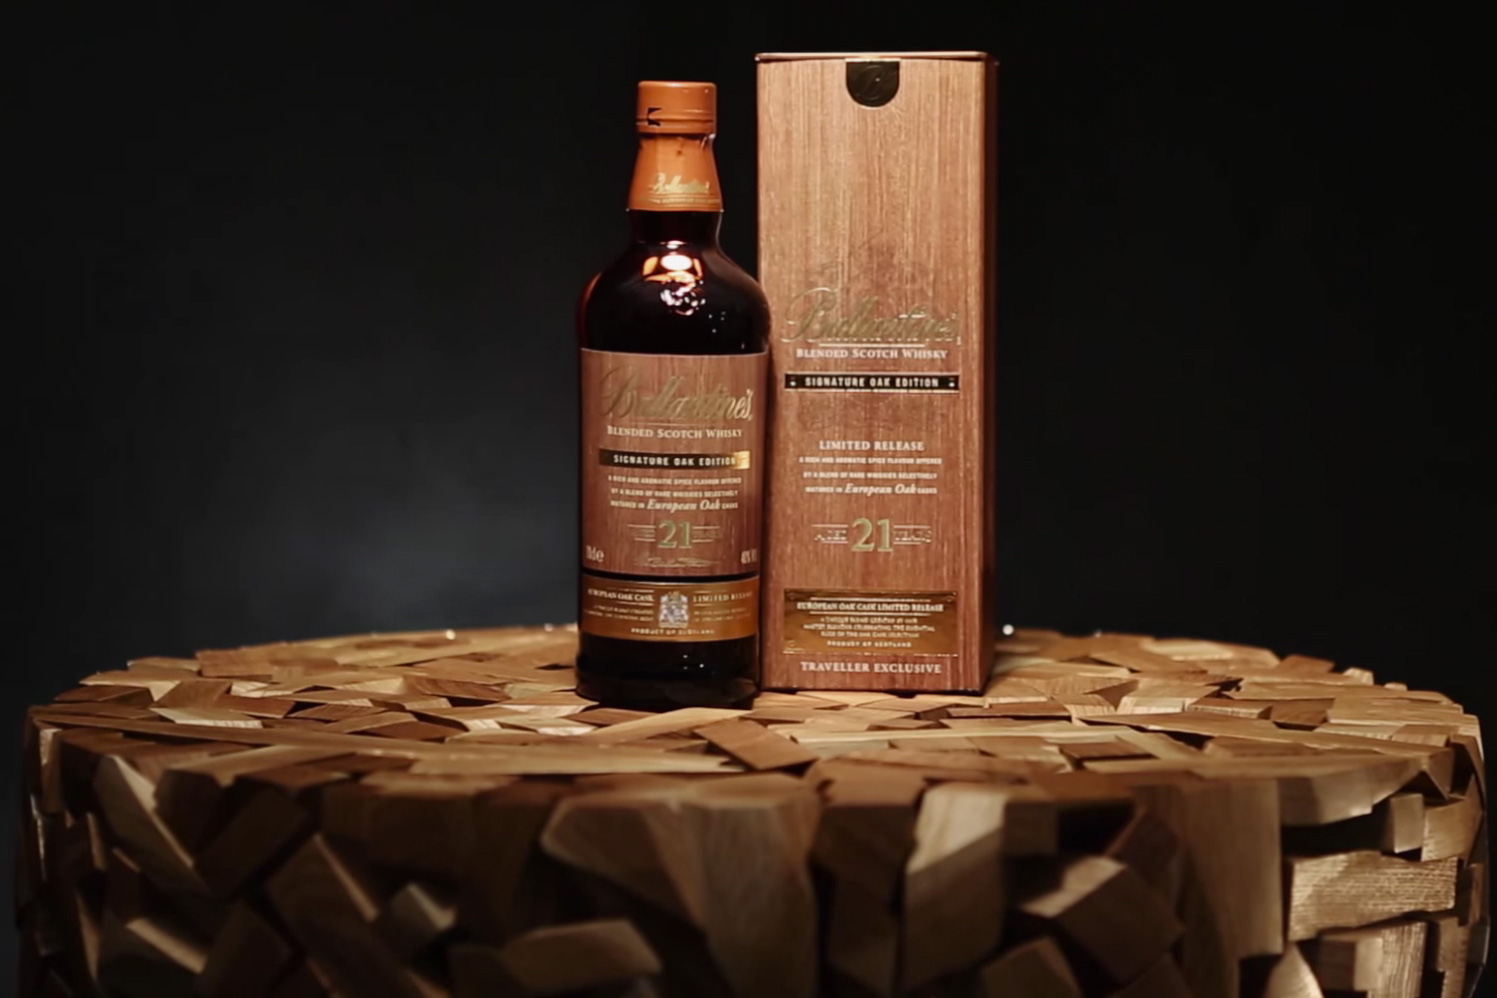 BALLANTINE'S 21 YEAR OLD SIGNATURE OAK EDITION